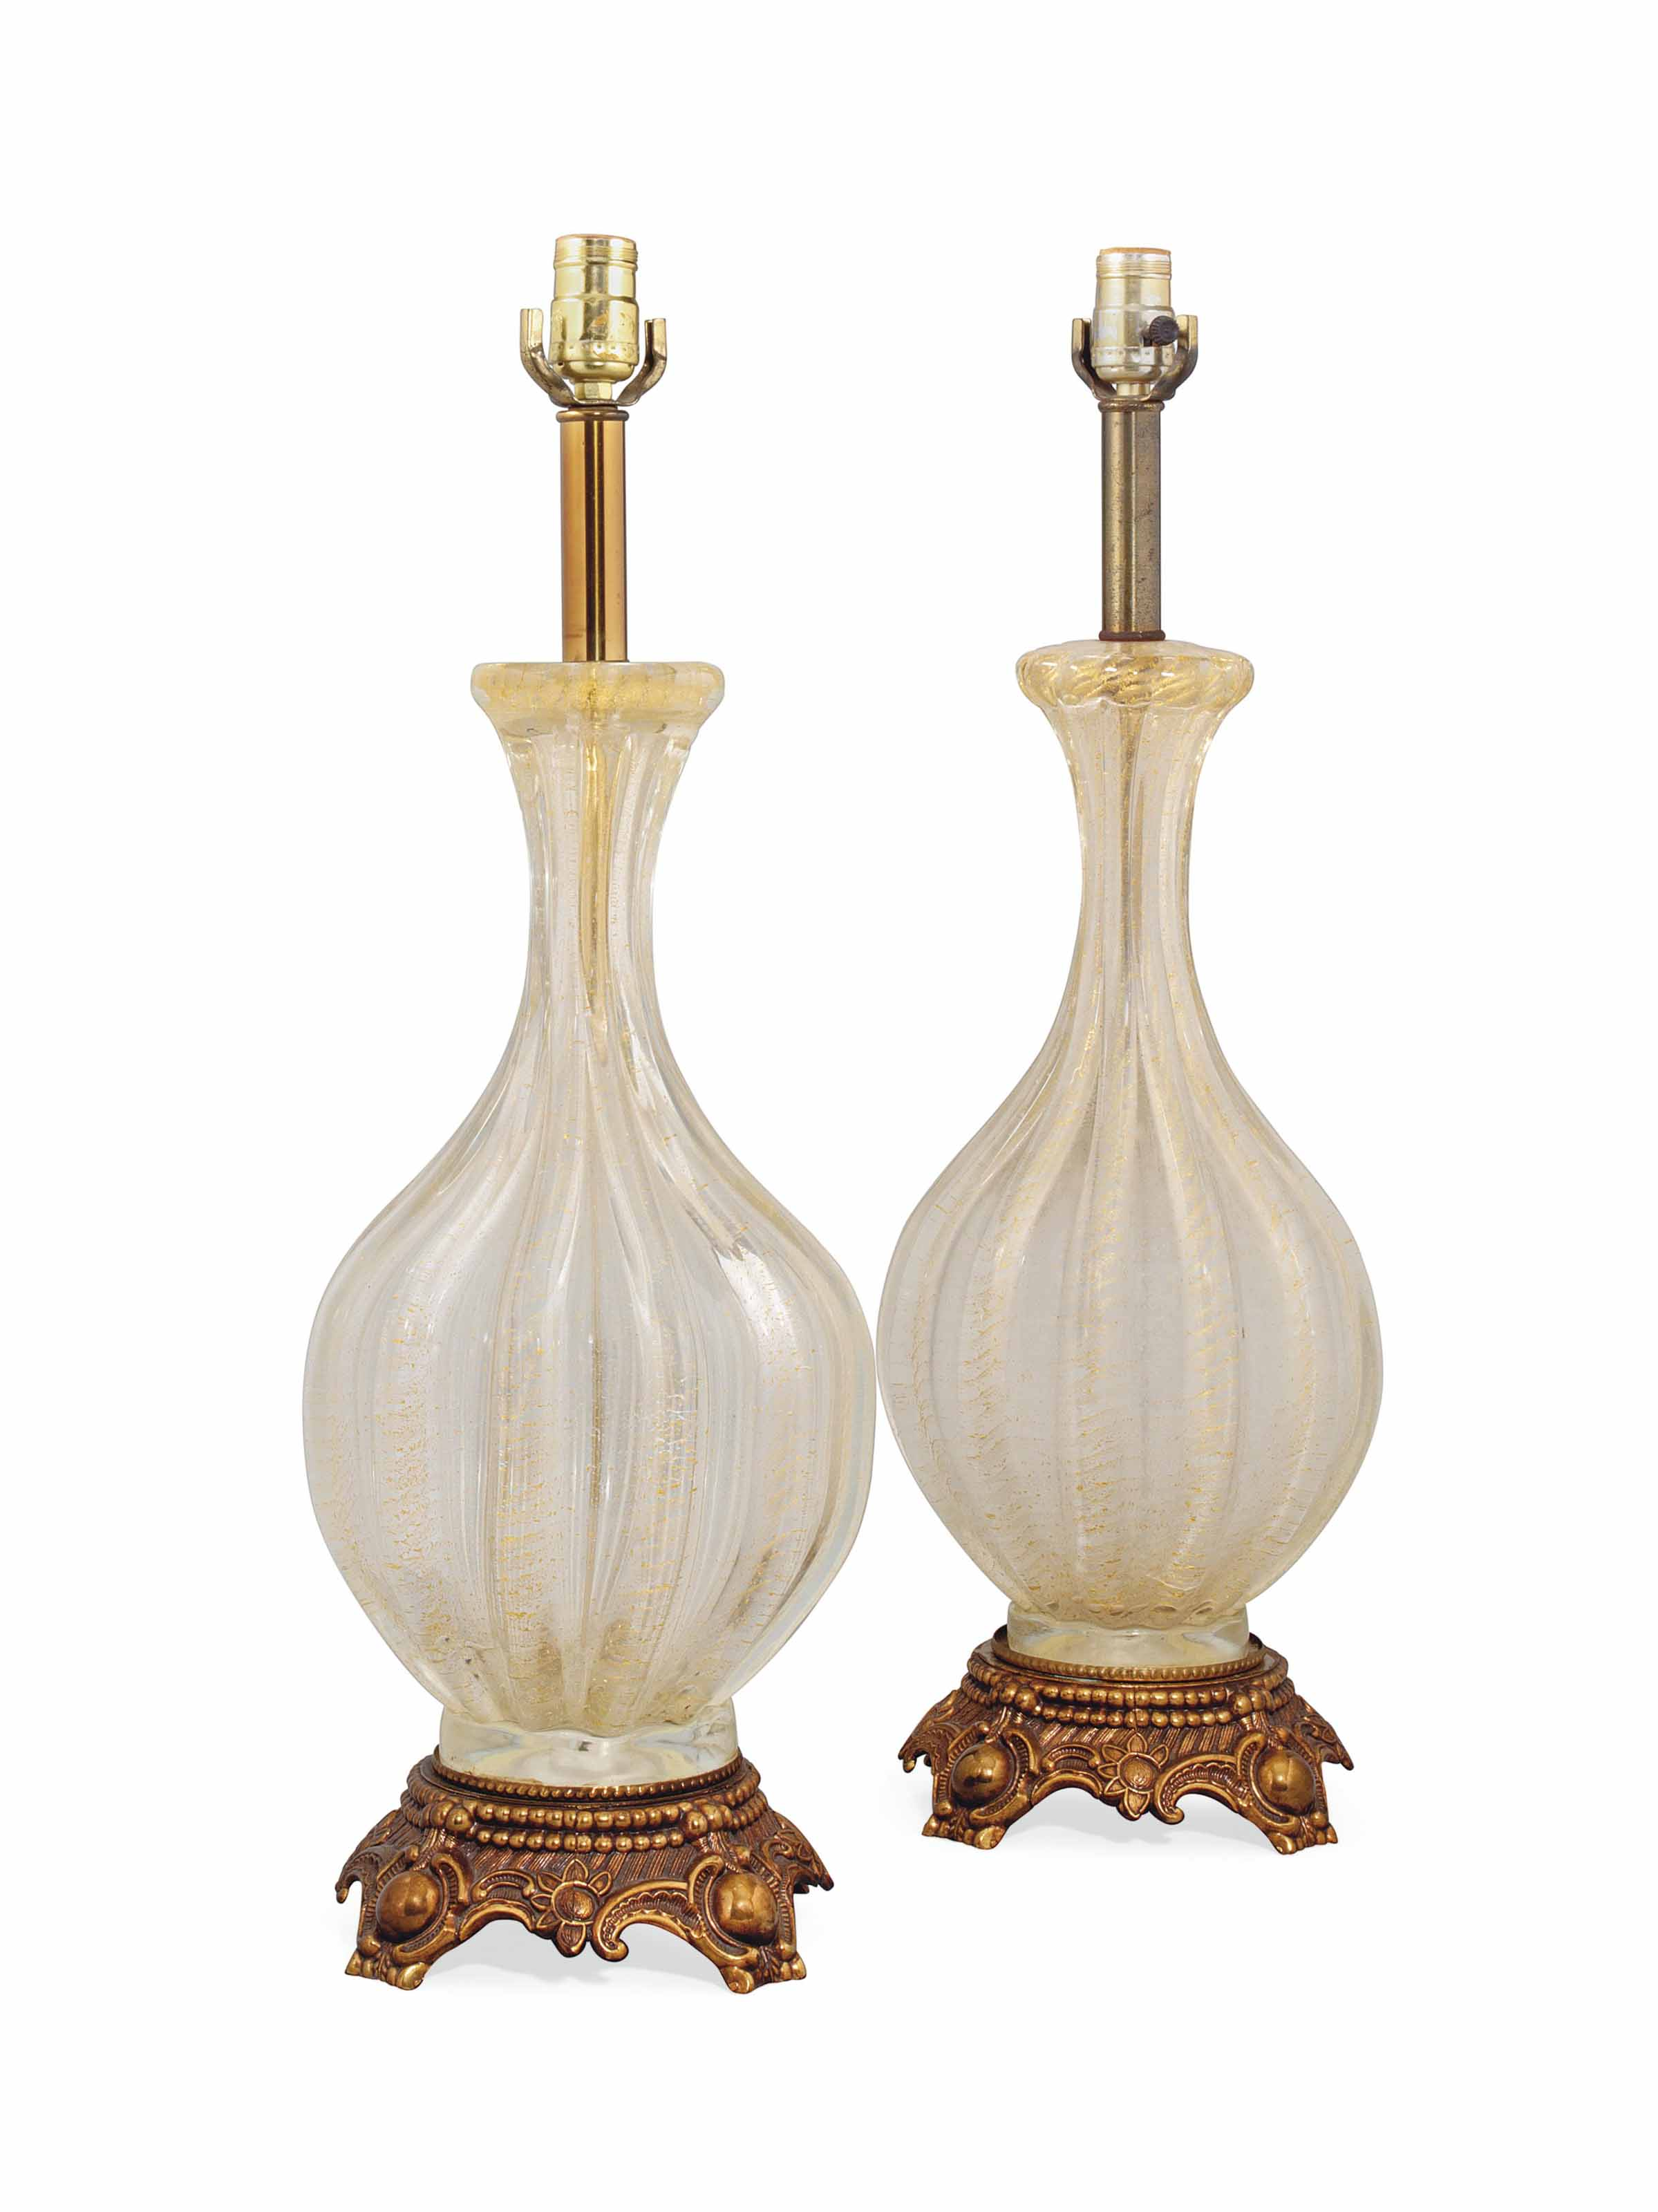 A NEAR PAIR OF VENETIAN MURANO GLASS TABLE LAMPS